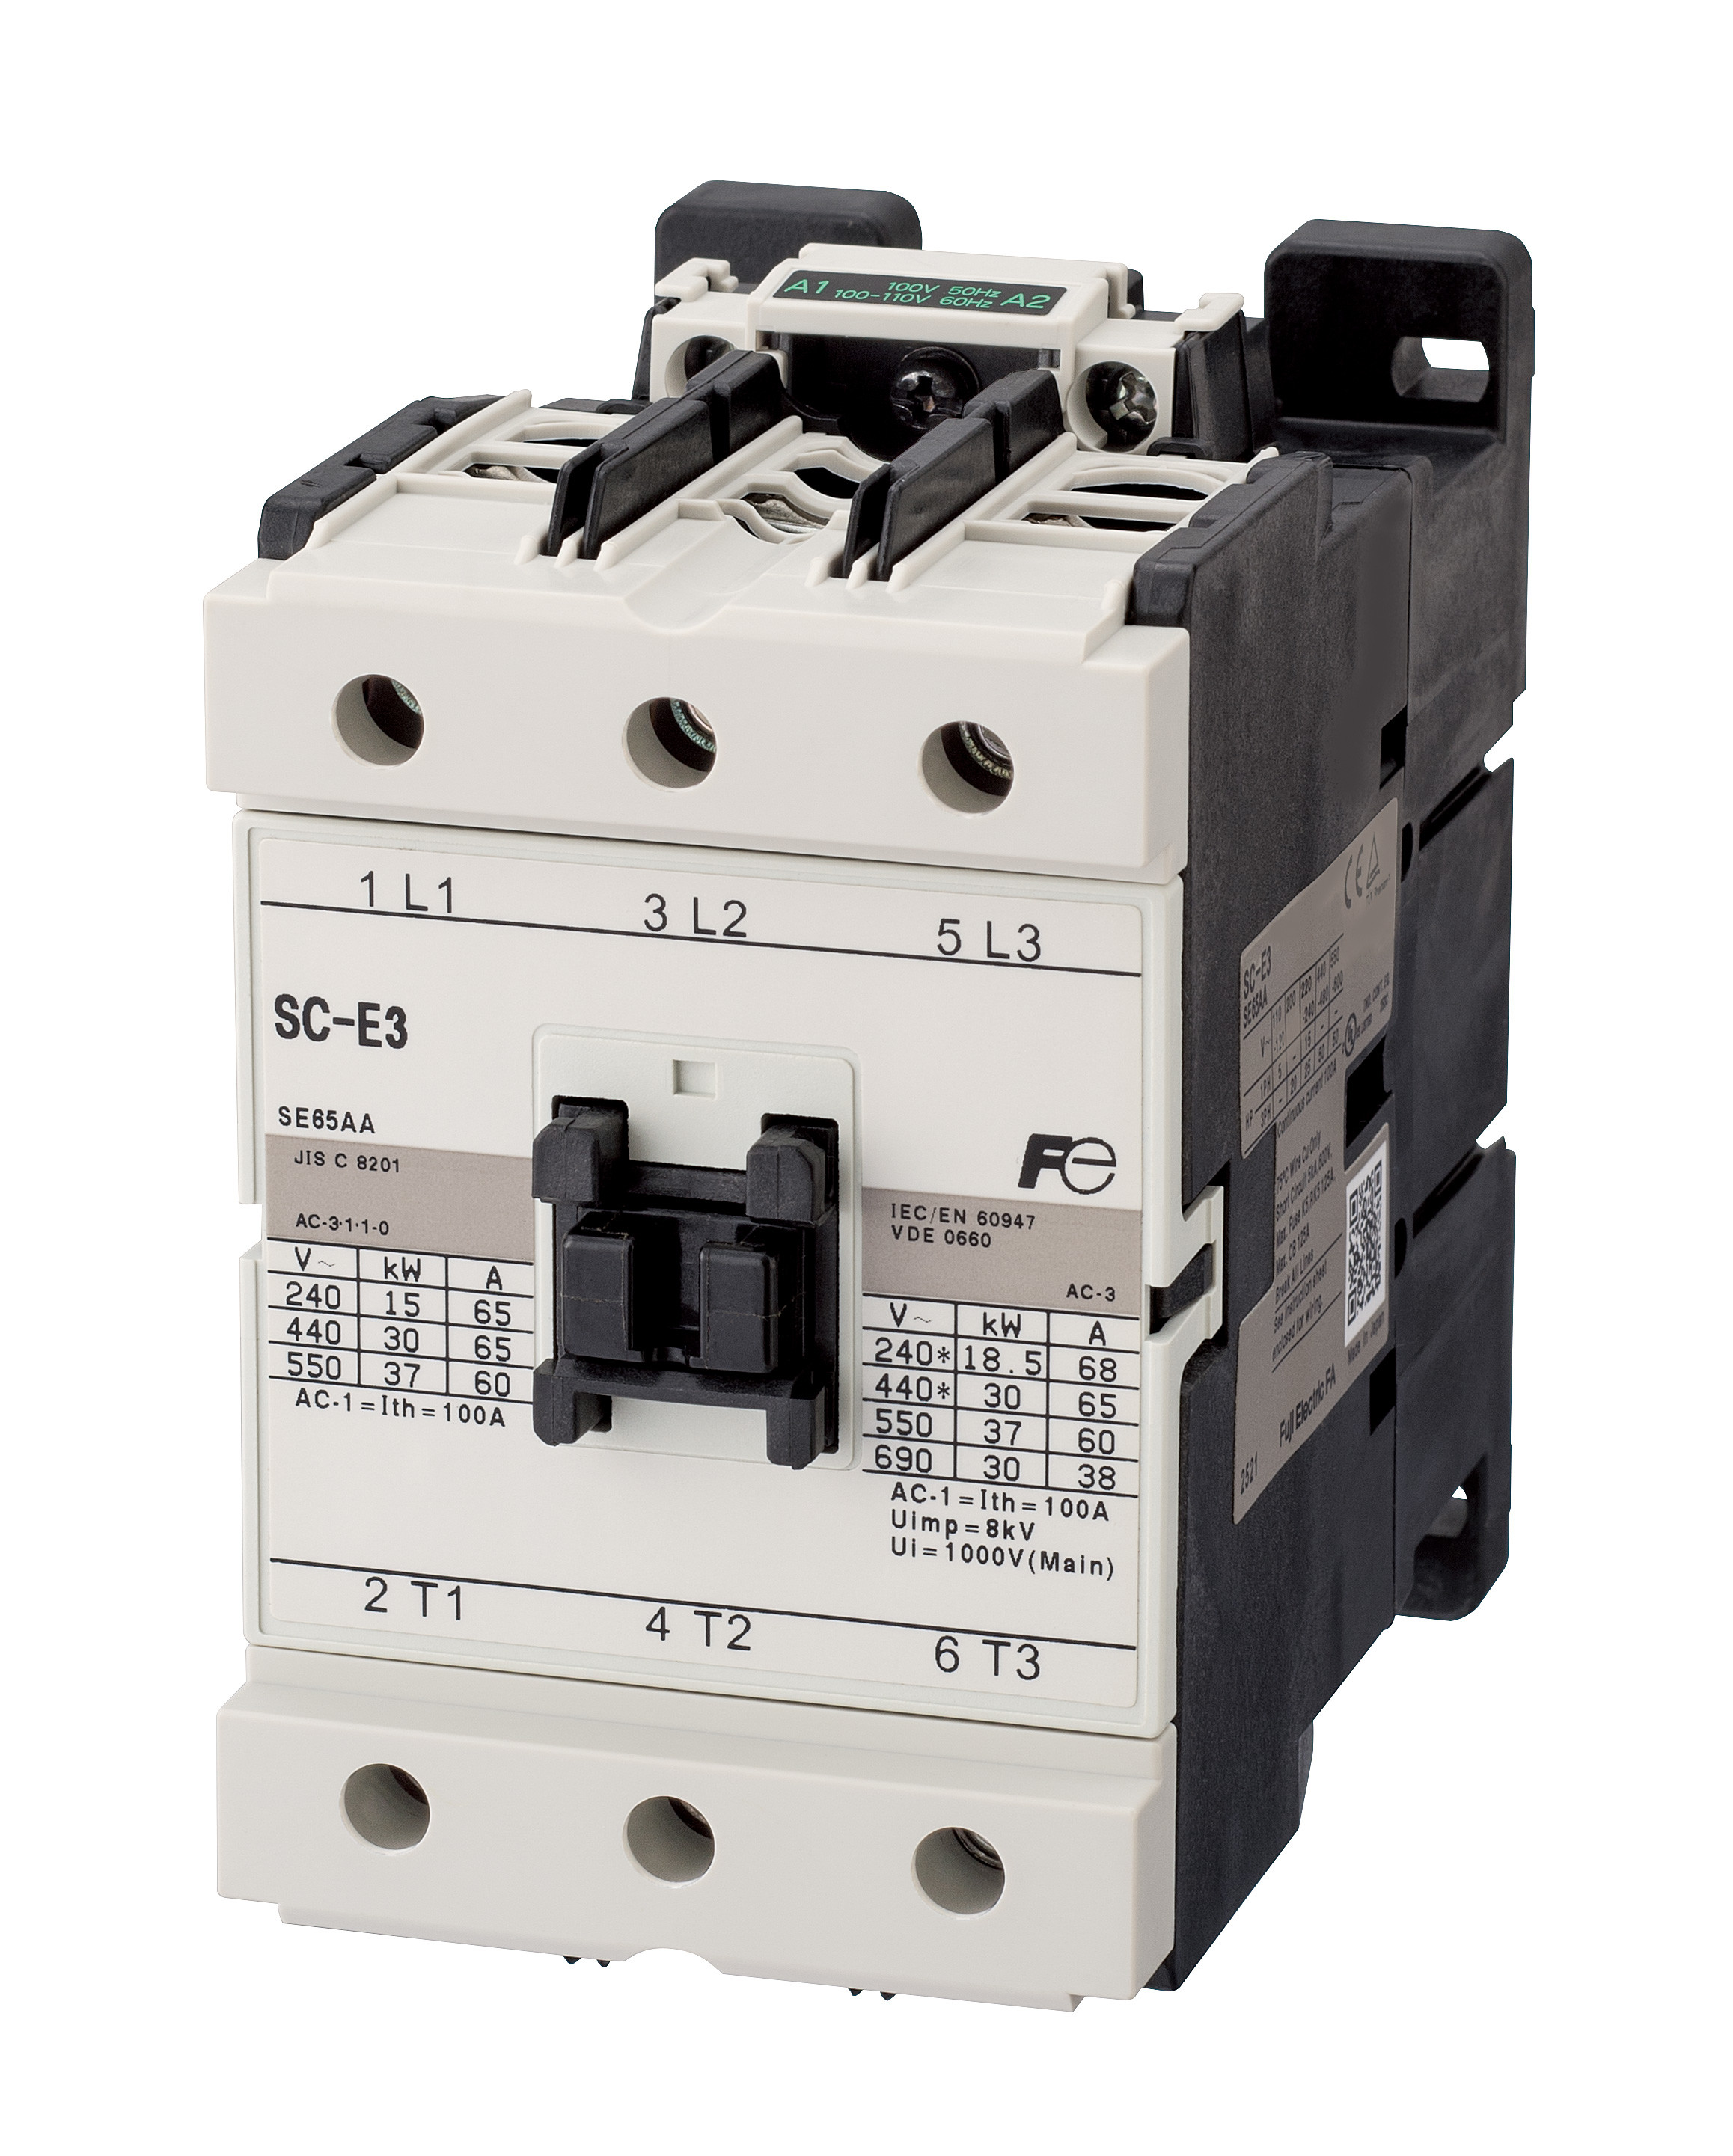 Power Distribution Control Devices Industrial Automation Circuit Breakers In The Off Position Without Locking Out An Entire Contactors Overload Relays